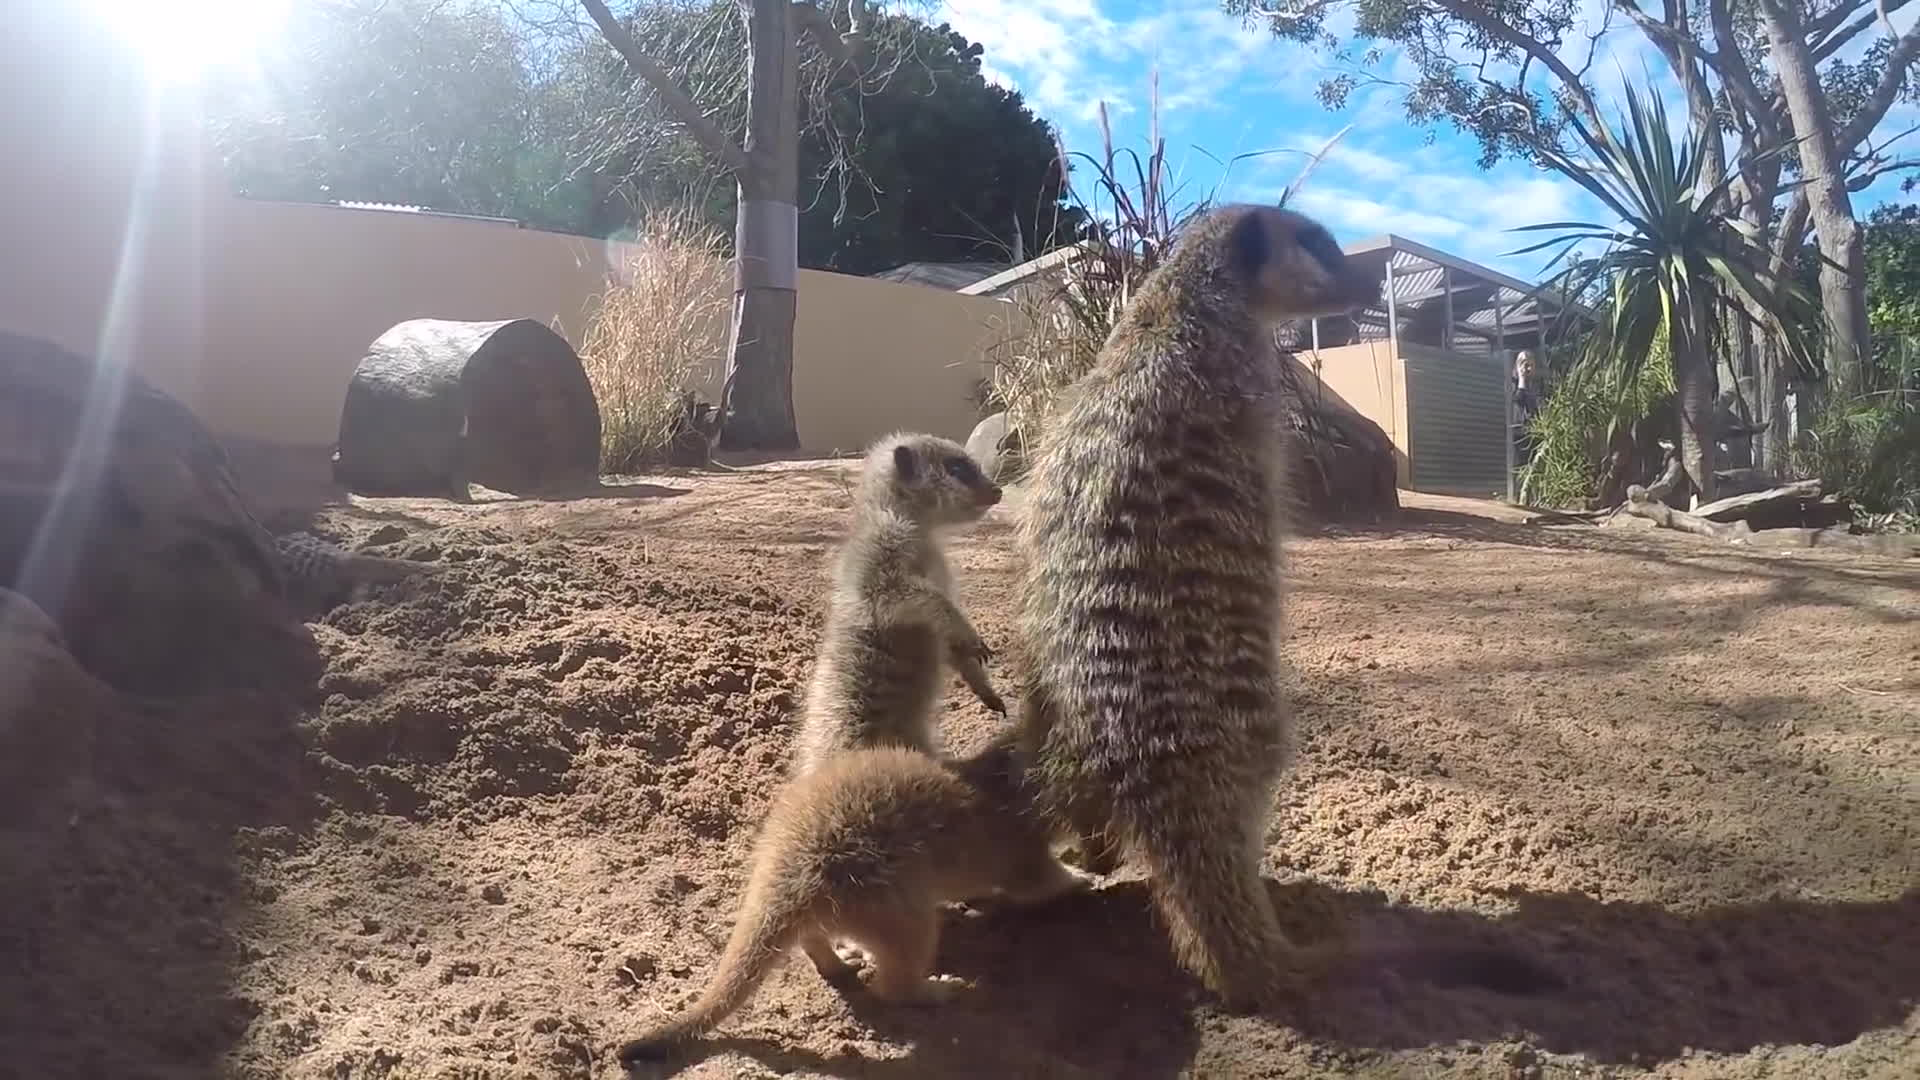 Meerkat Baby Gifs Search | Search & Share on Homdor